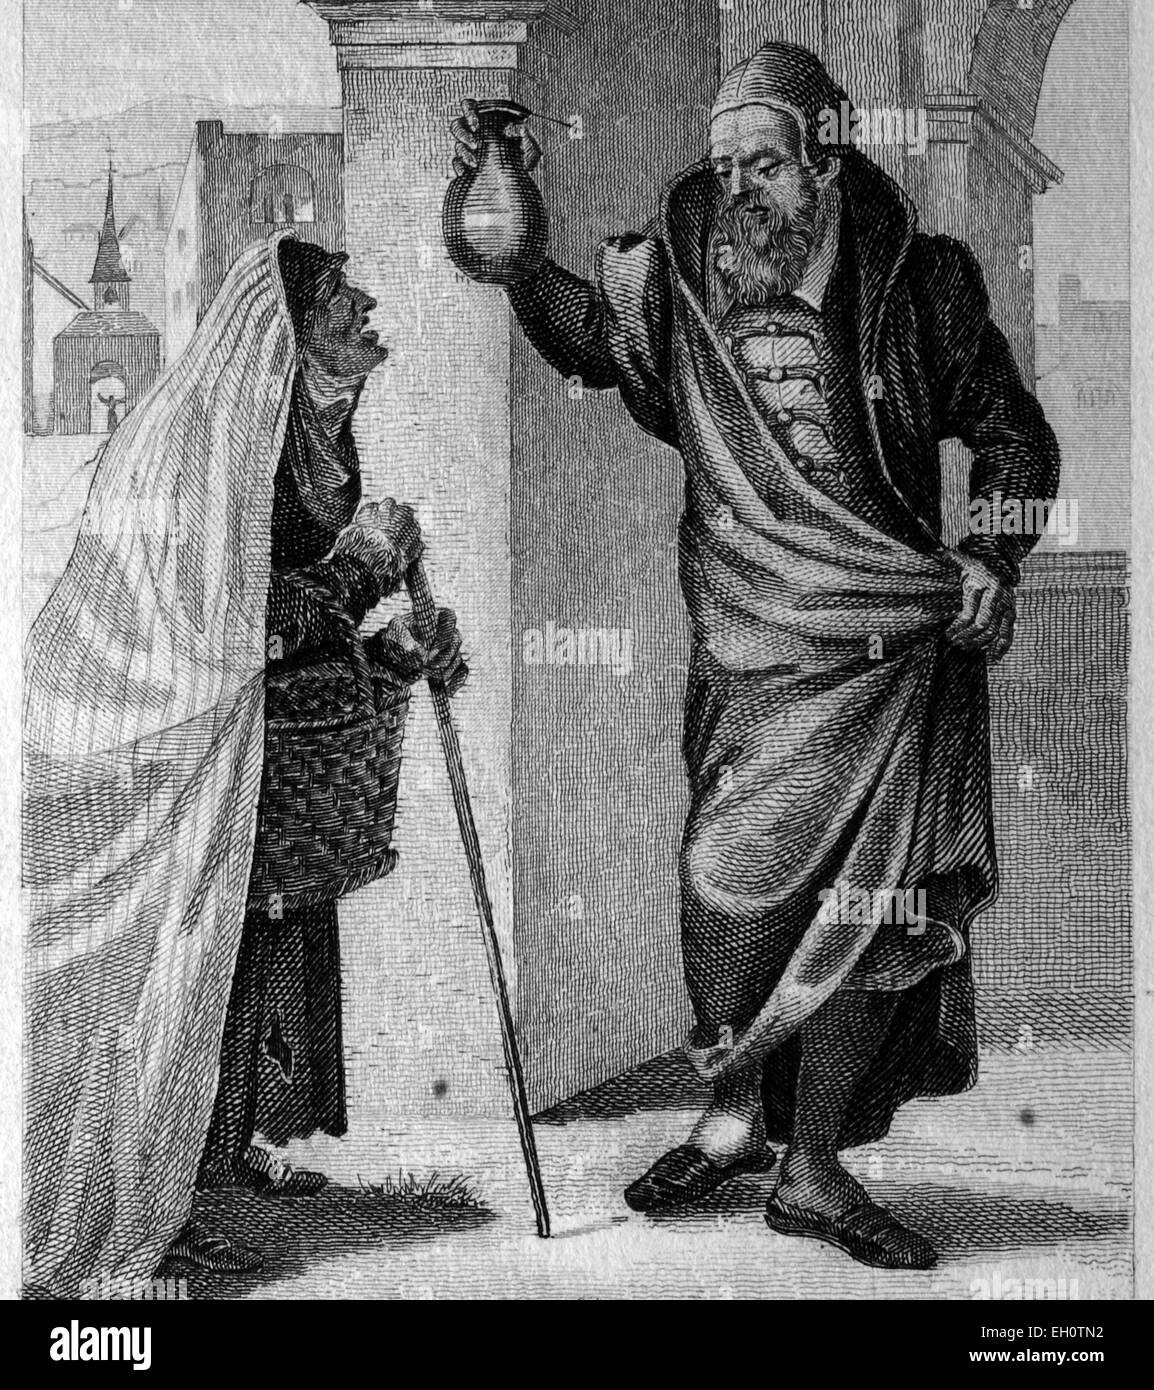 Doctor in the 16th Century, historical illustration - Stock Image